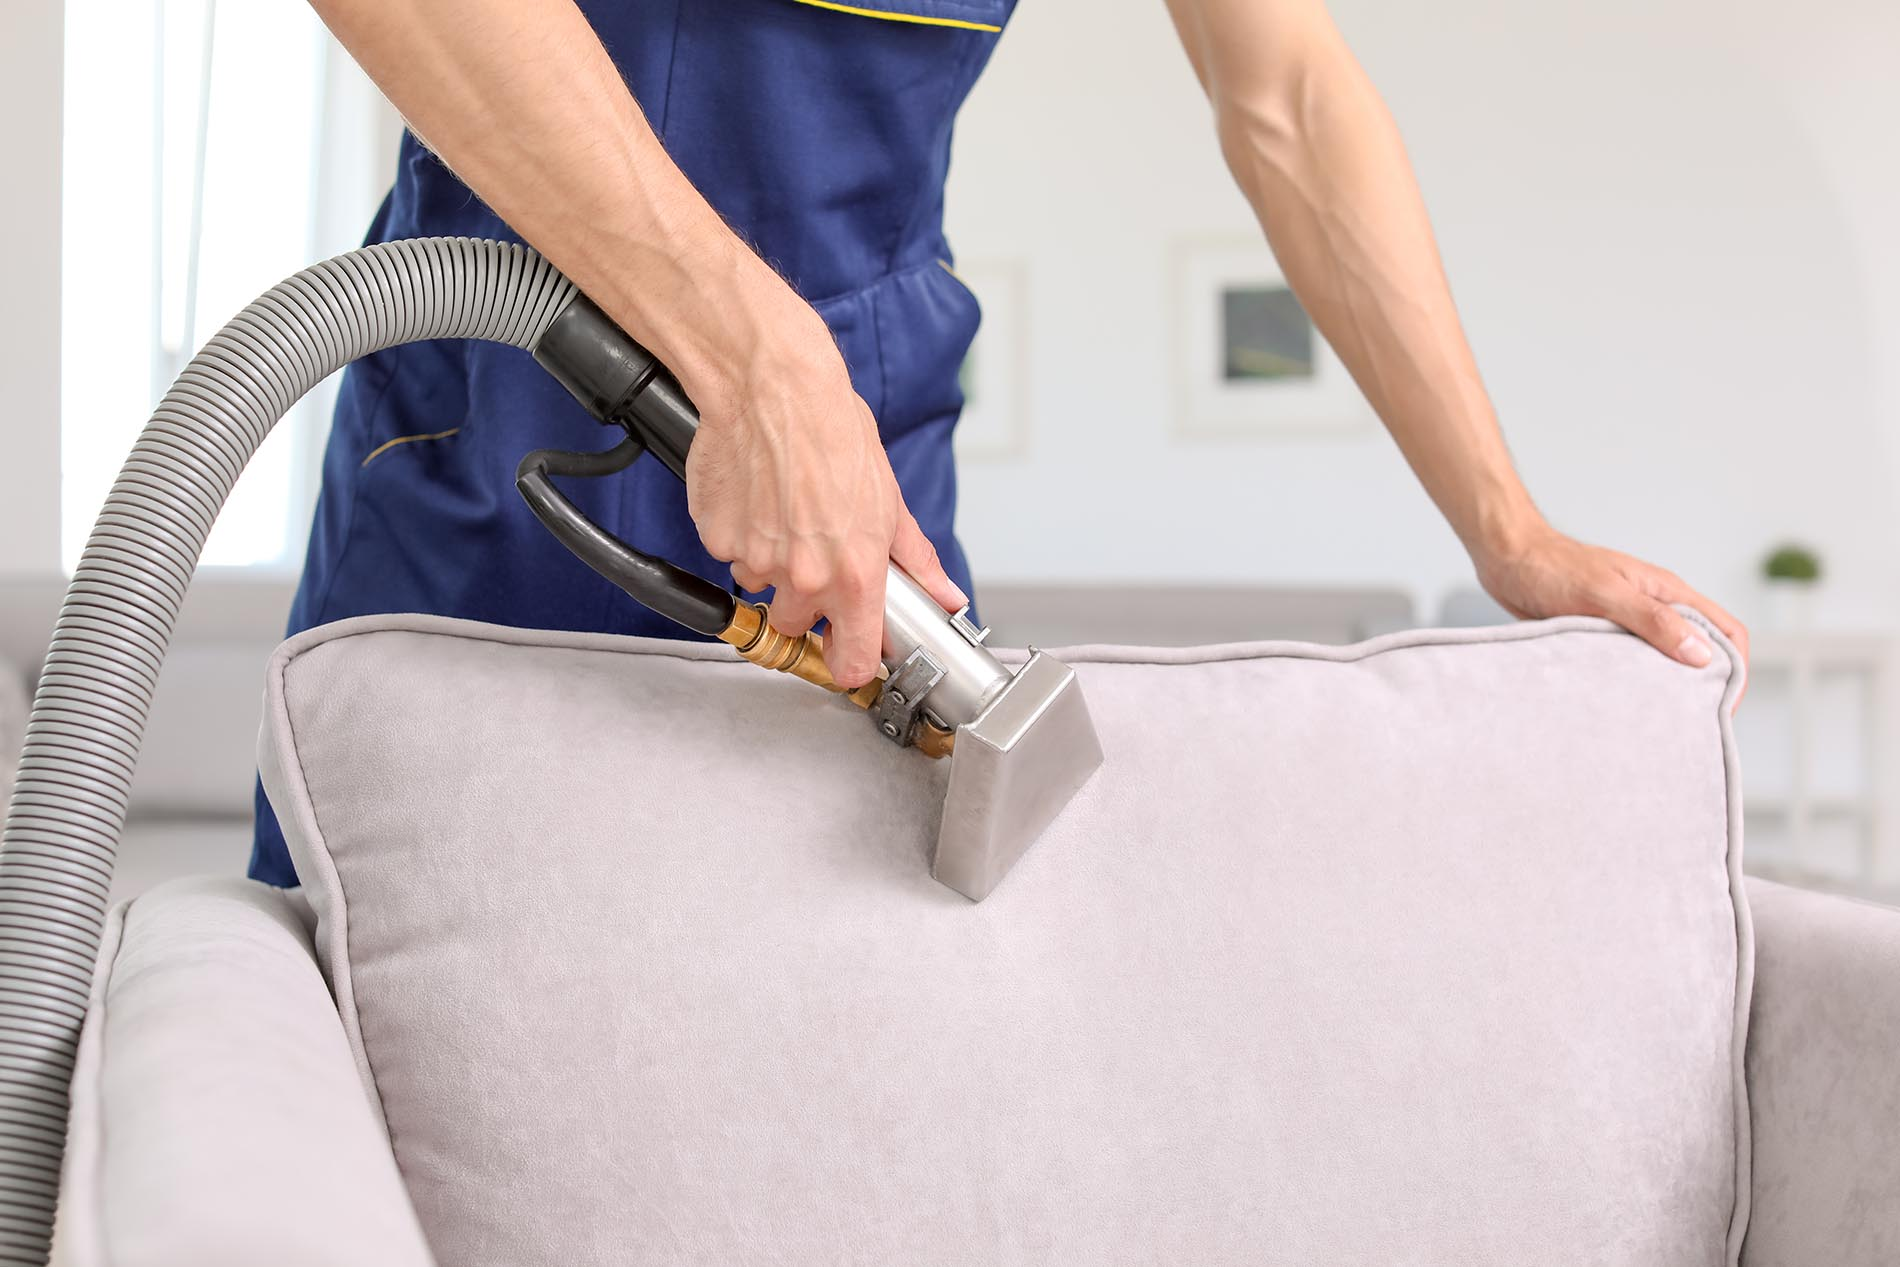 Upholstery and Furniture Cleaning - Spotless Carpet Cleaning